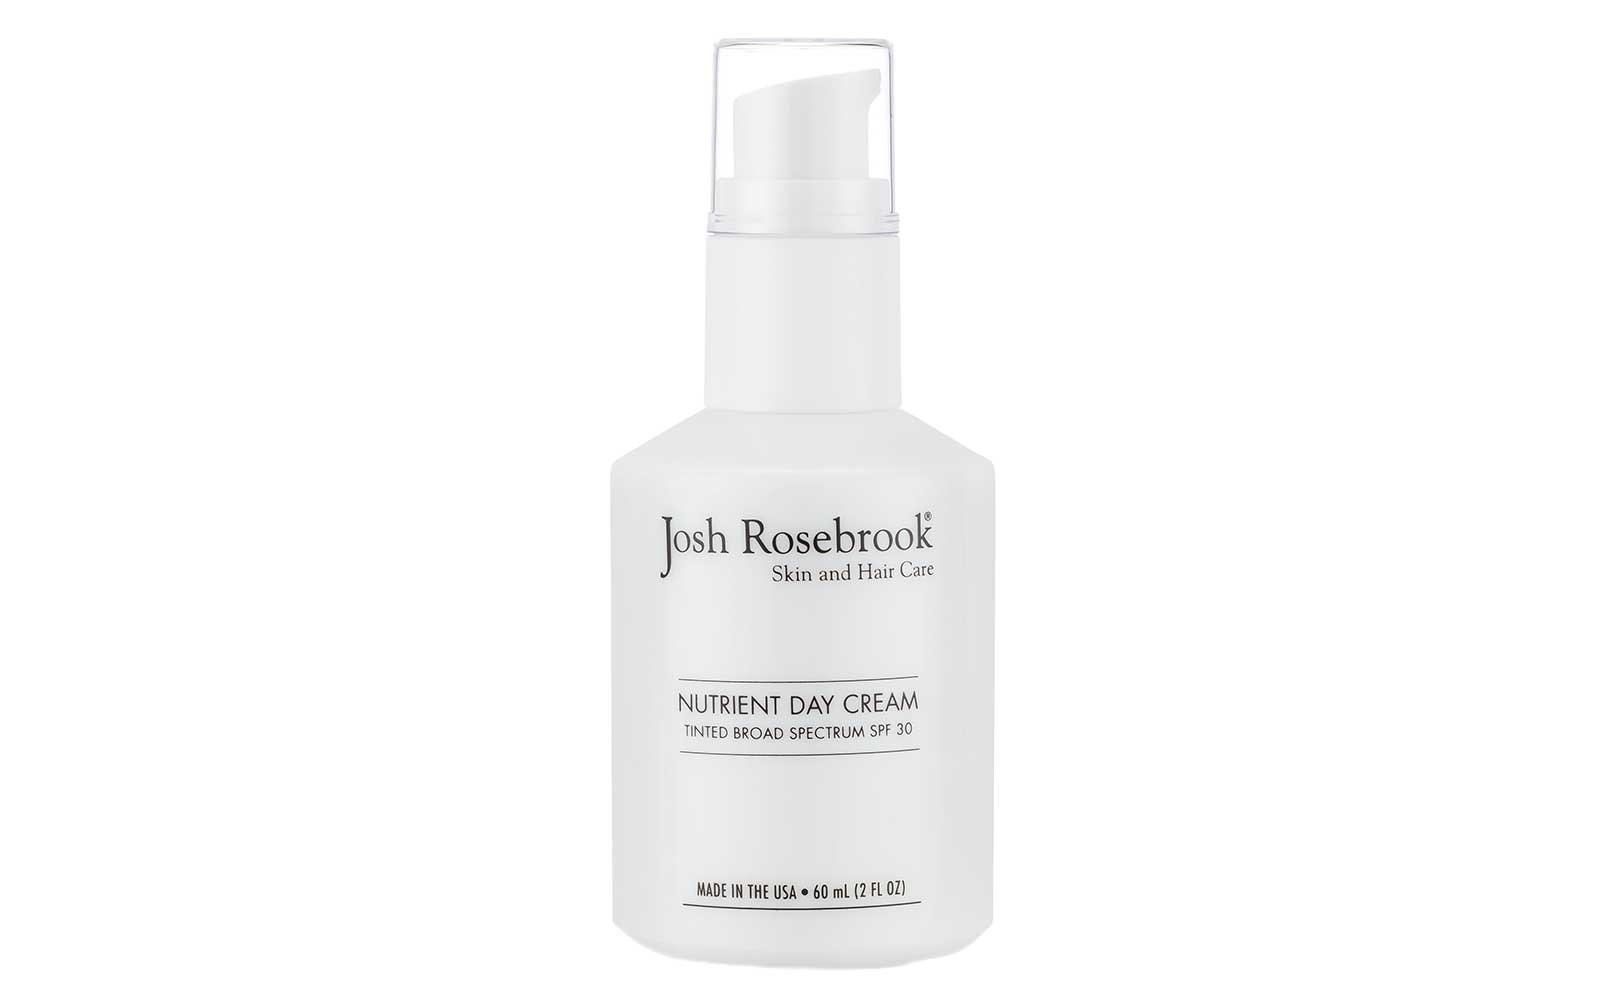 Josh Rosebrook Nutrient Day Cream SPF 30